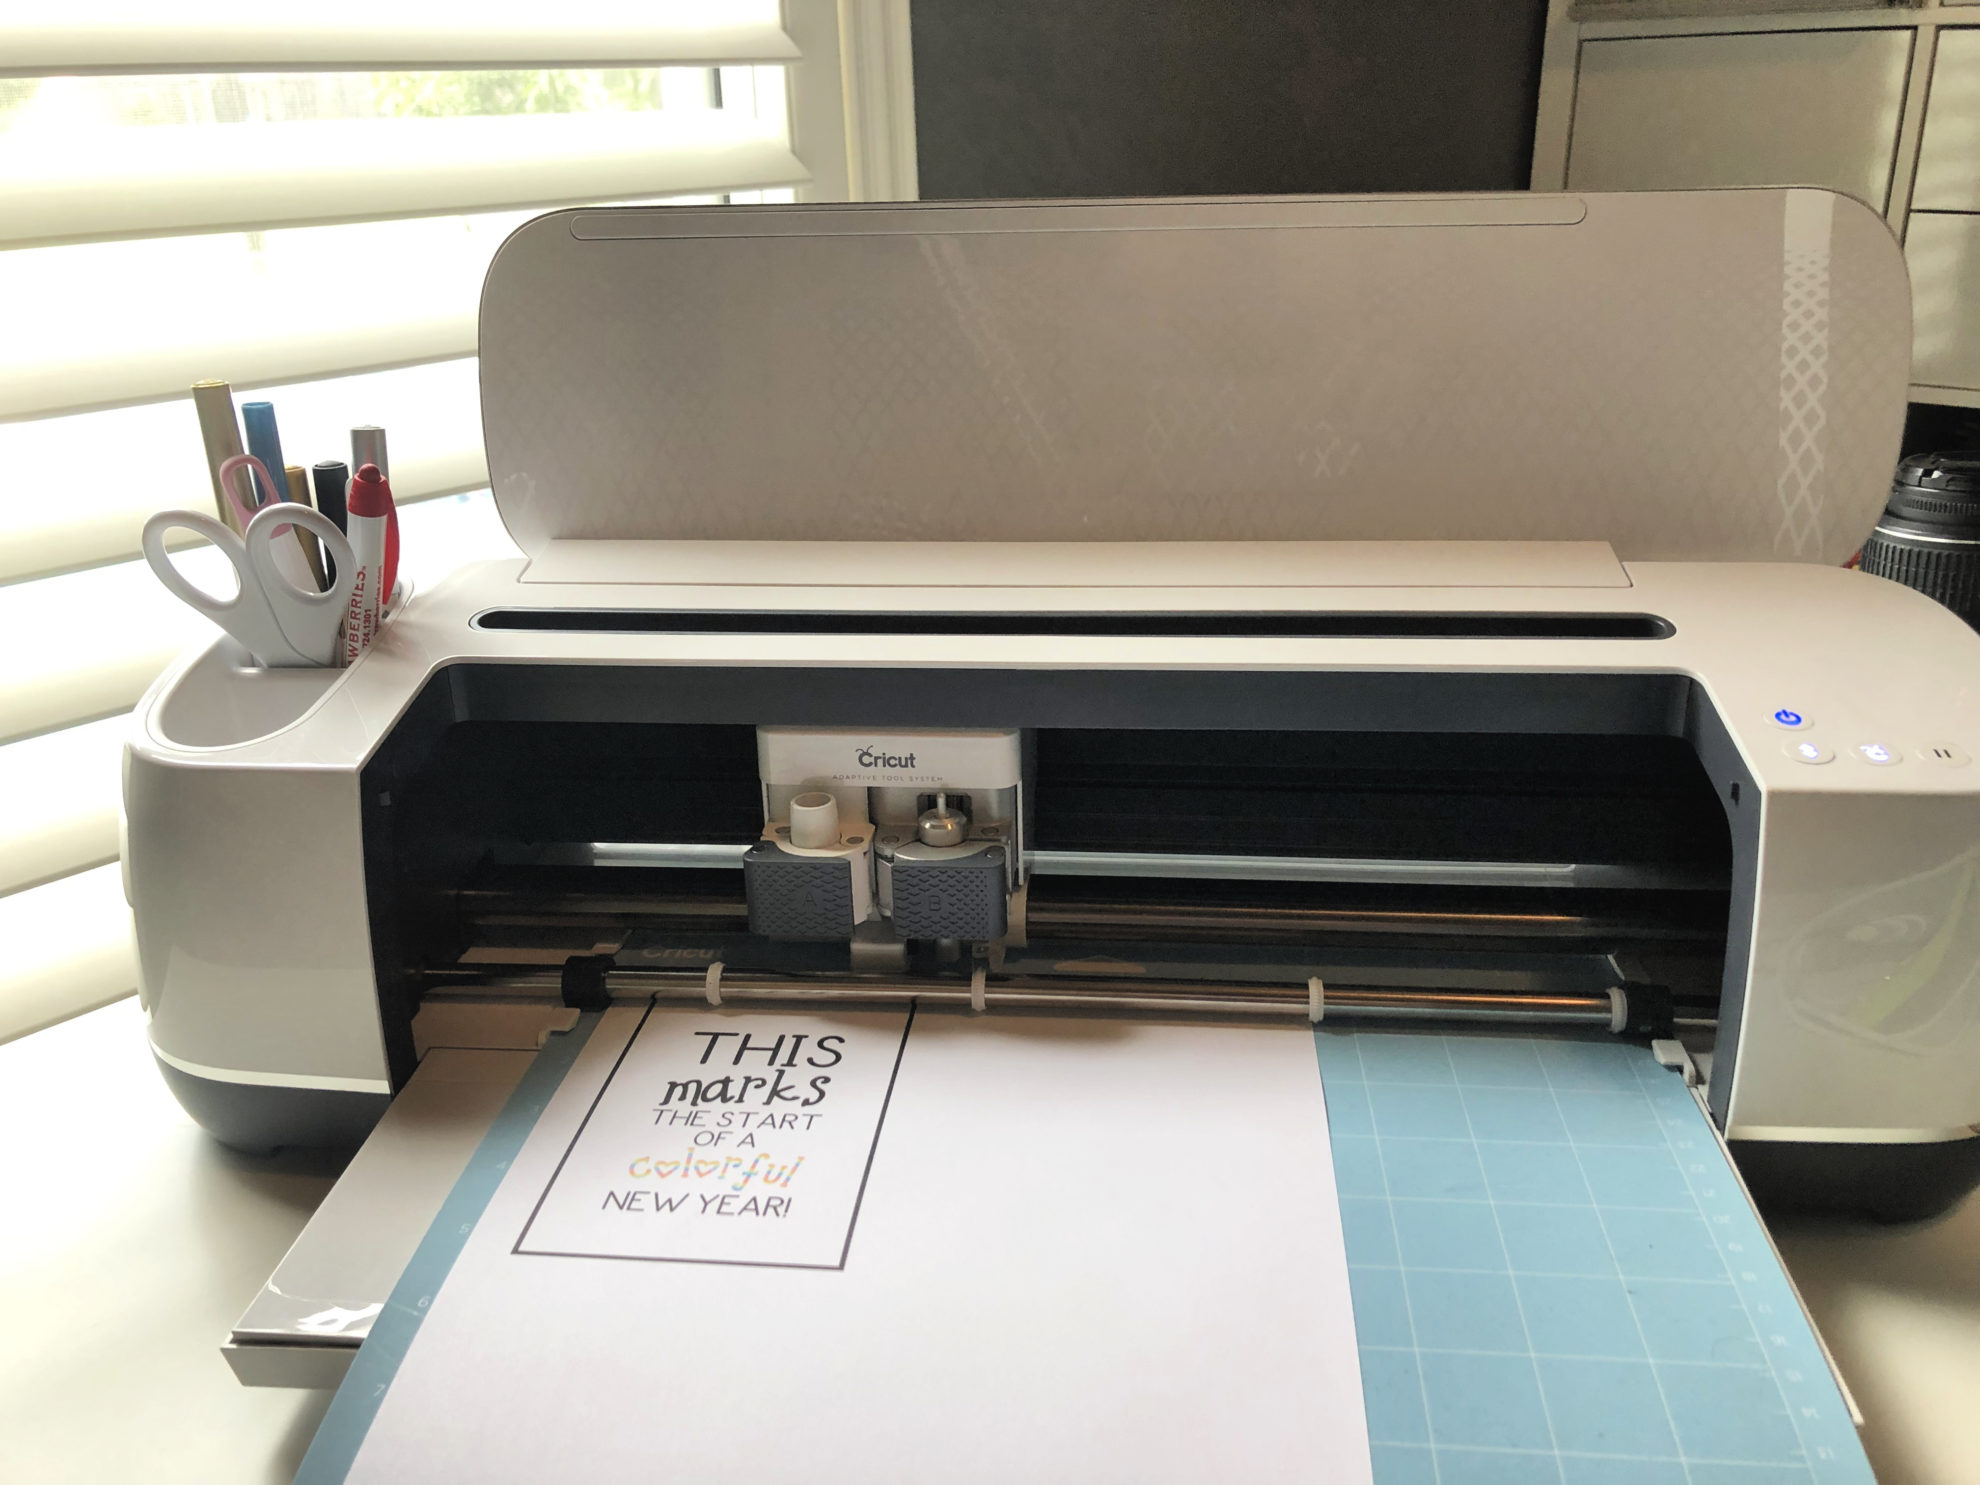 Cricut Maker with blue mat loaded and paper with printed design on paper.